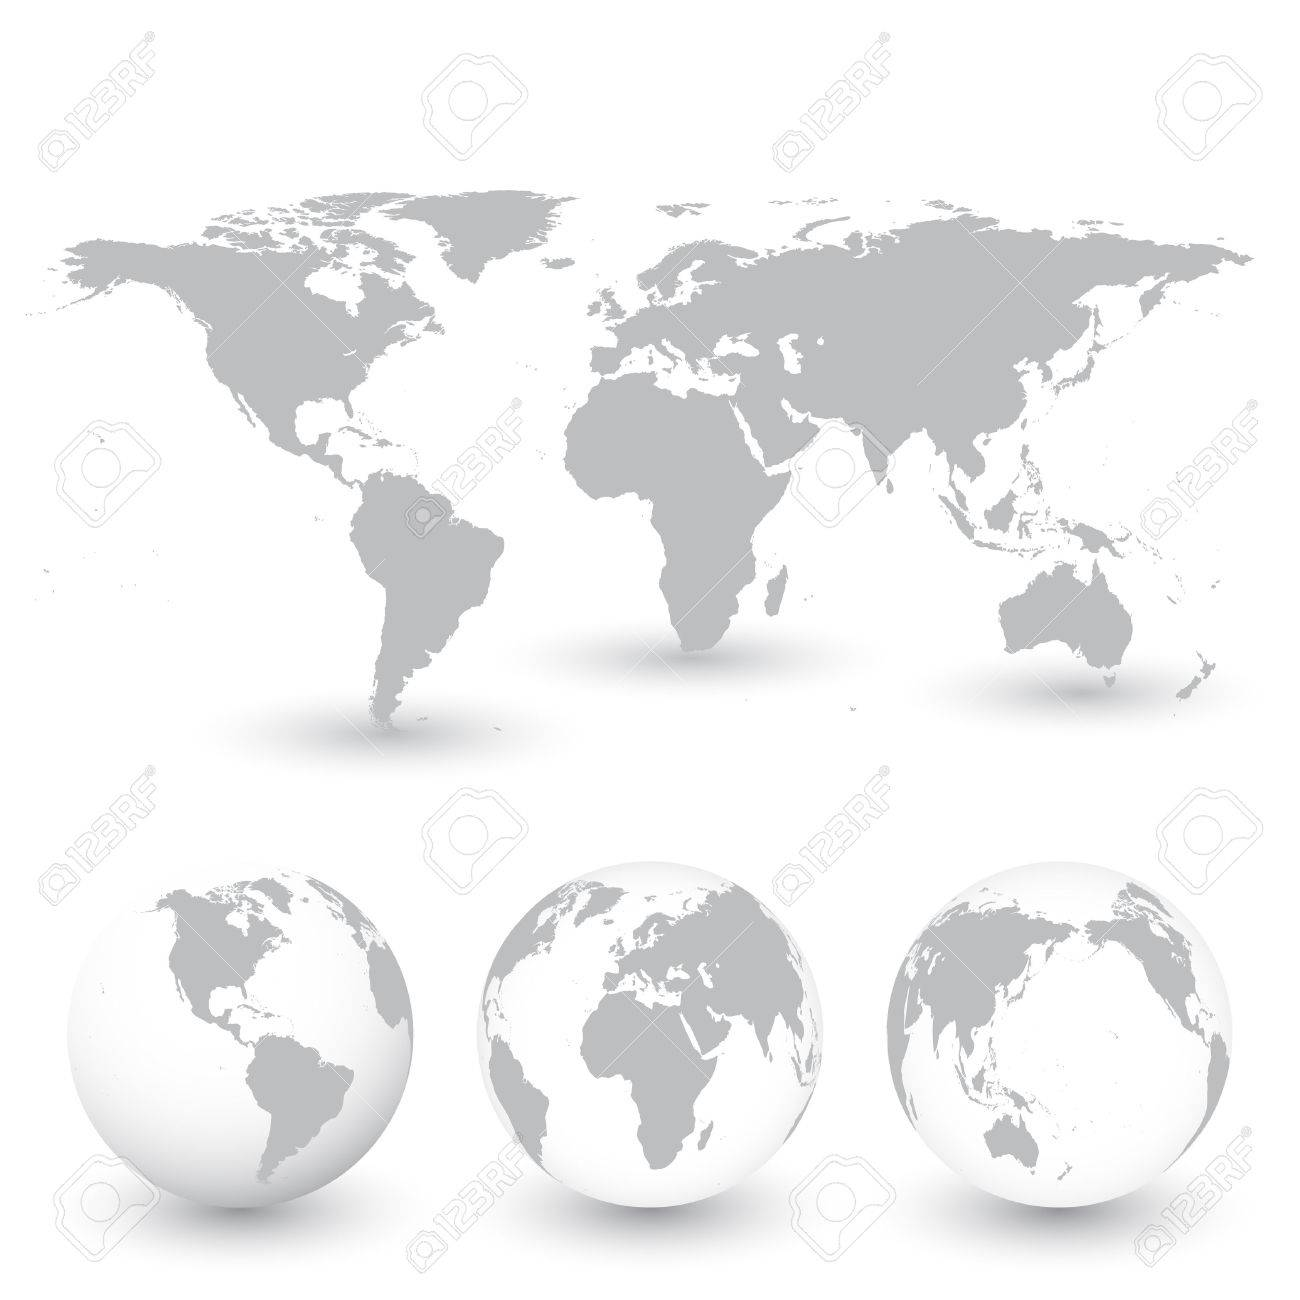 Grey World Map And Globes Vector Illustration. Royalty Free Cliparts ...